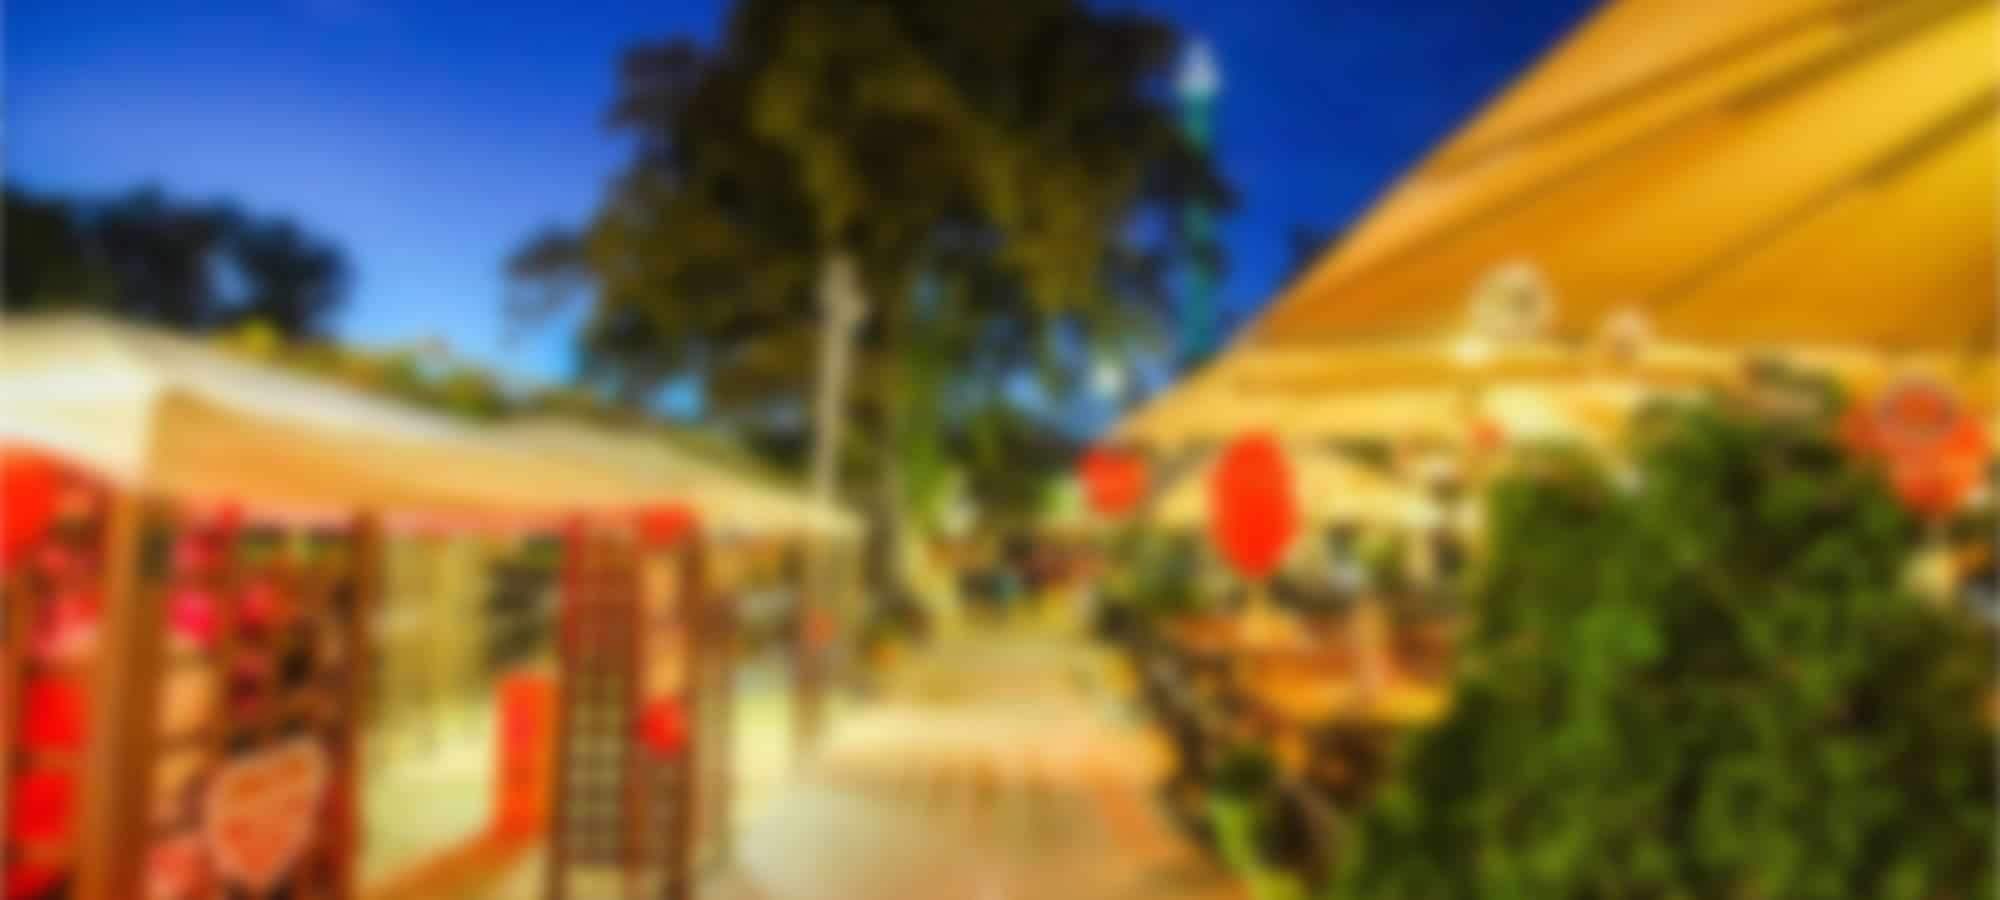 header-gastgarten-blurred